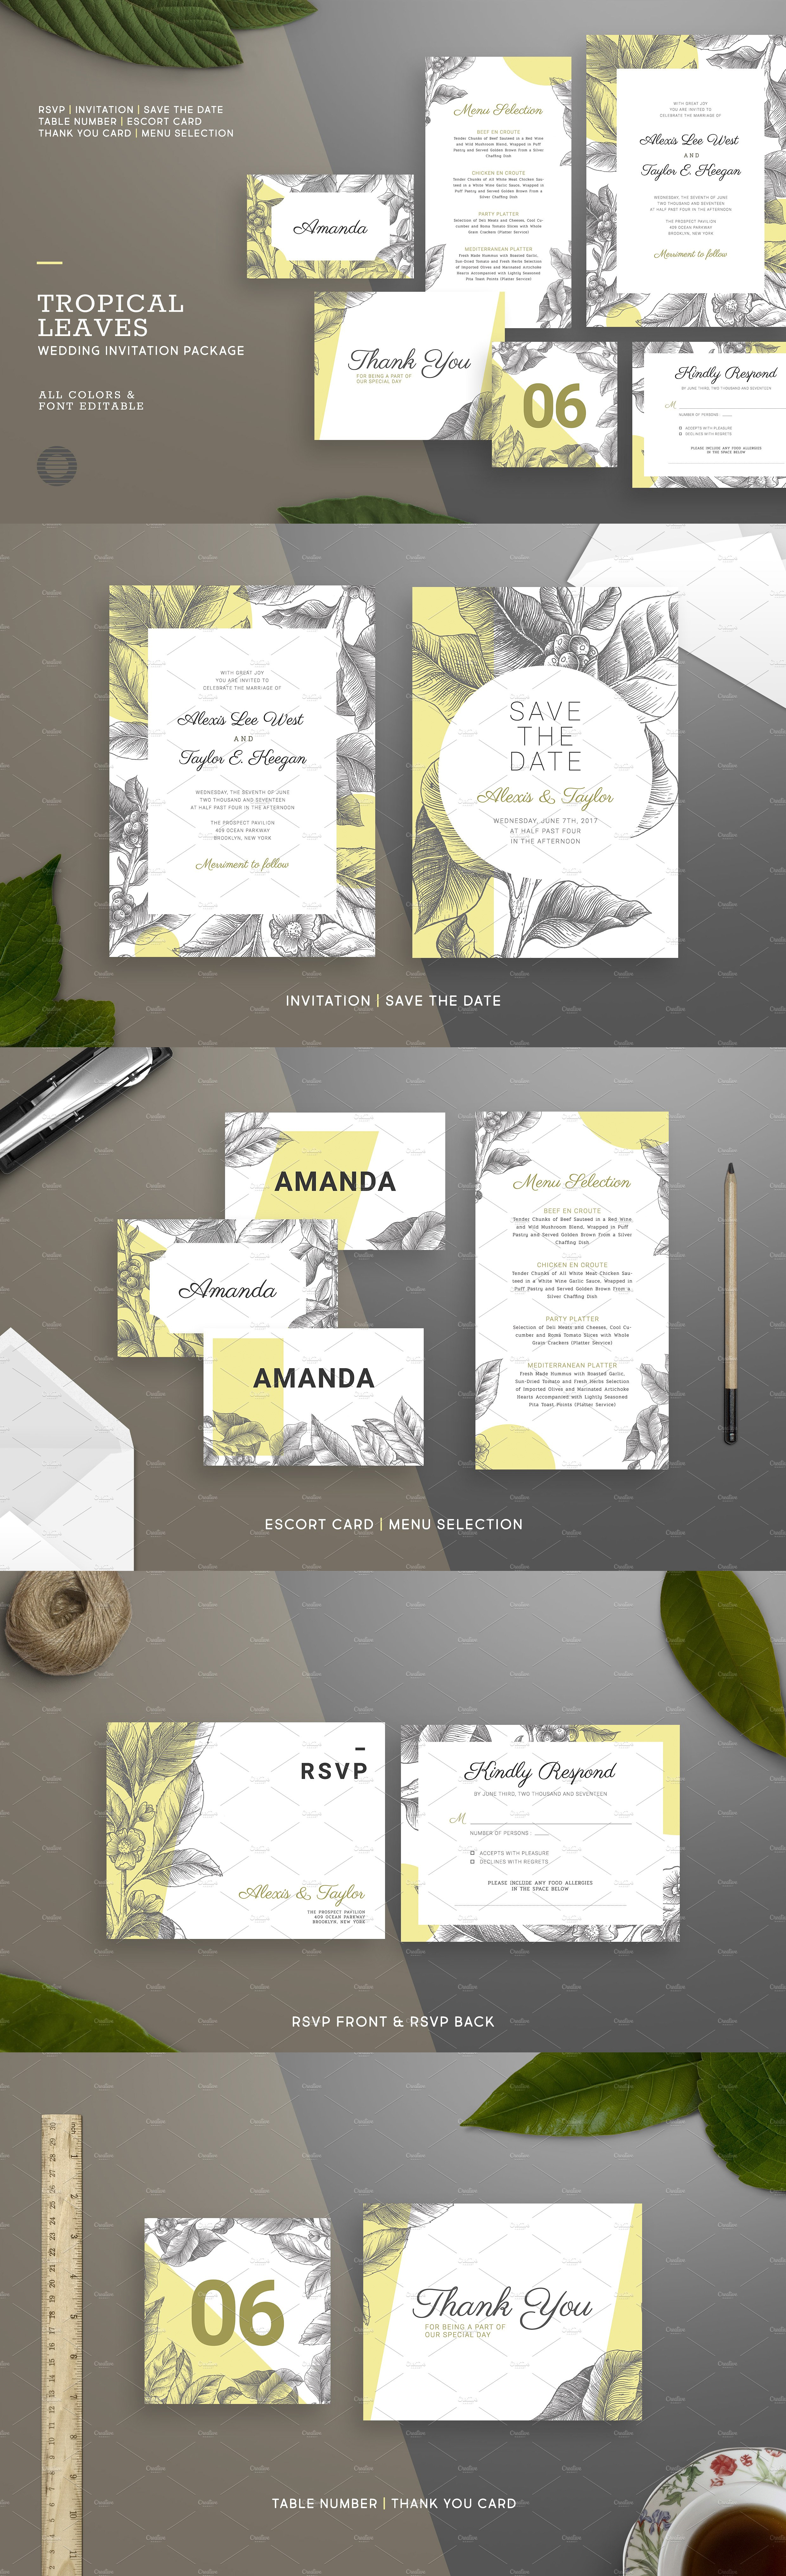 Tropical Leaves Wedding Invitation Templates PSD | Invitation ...